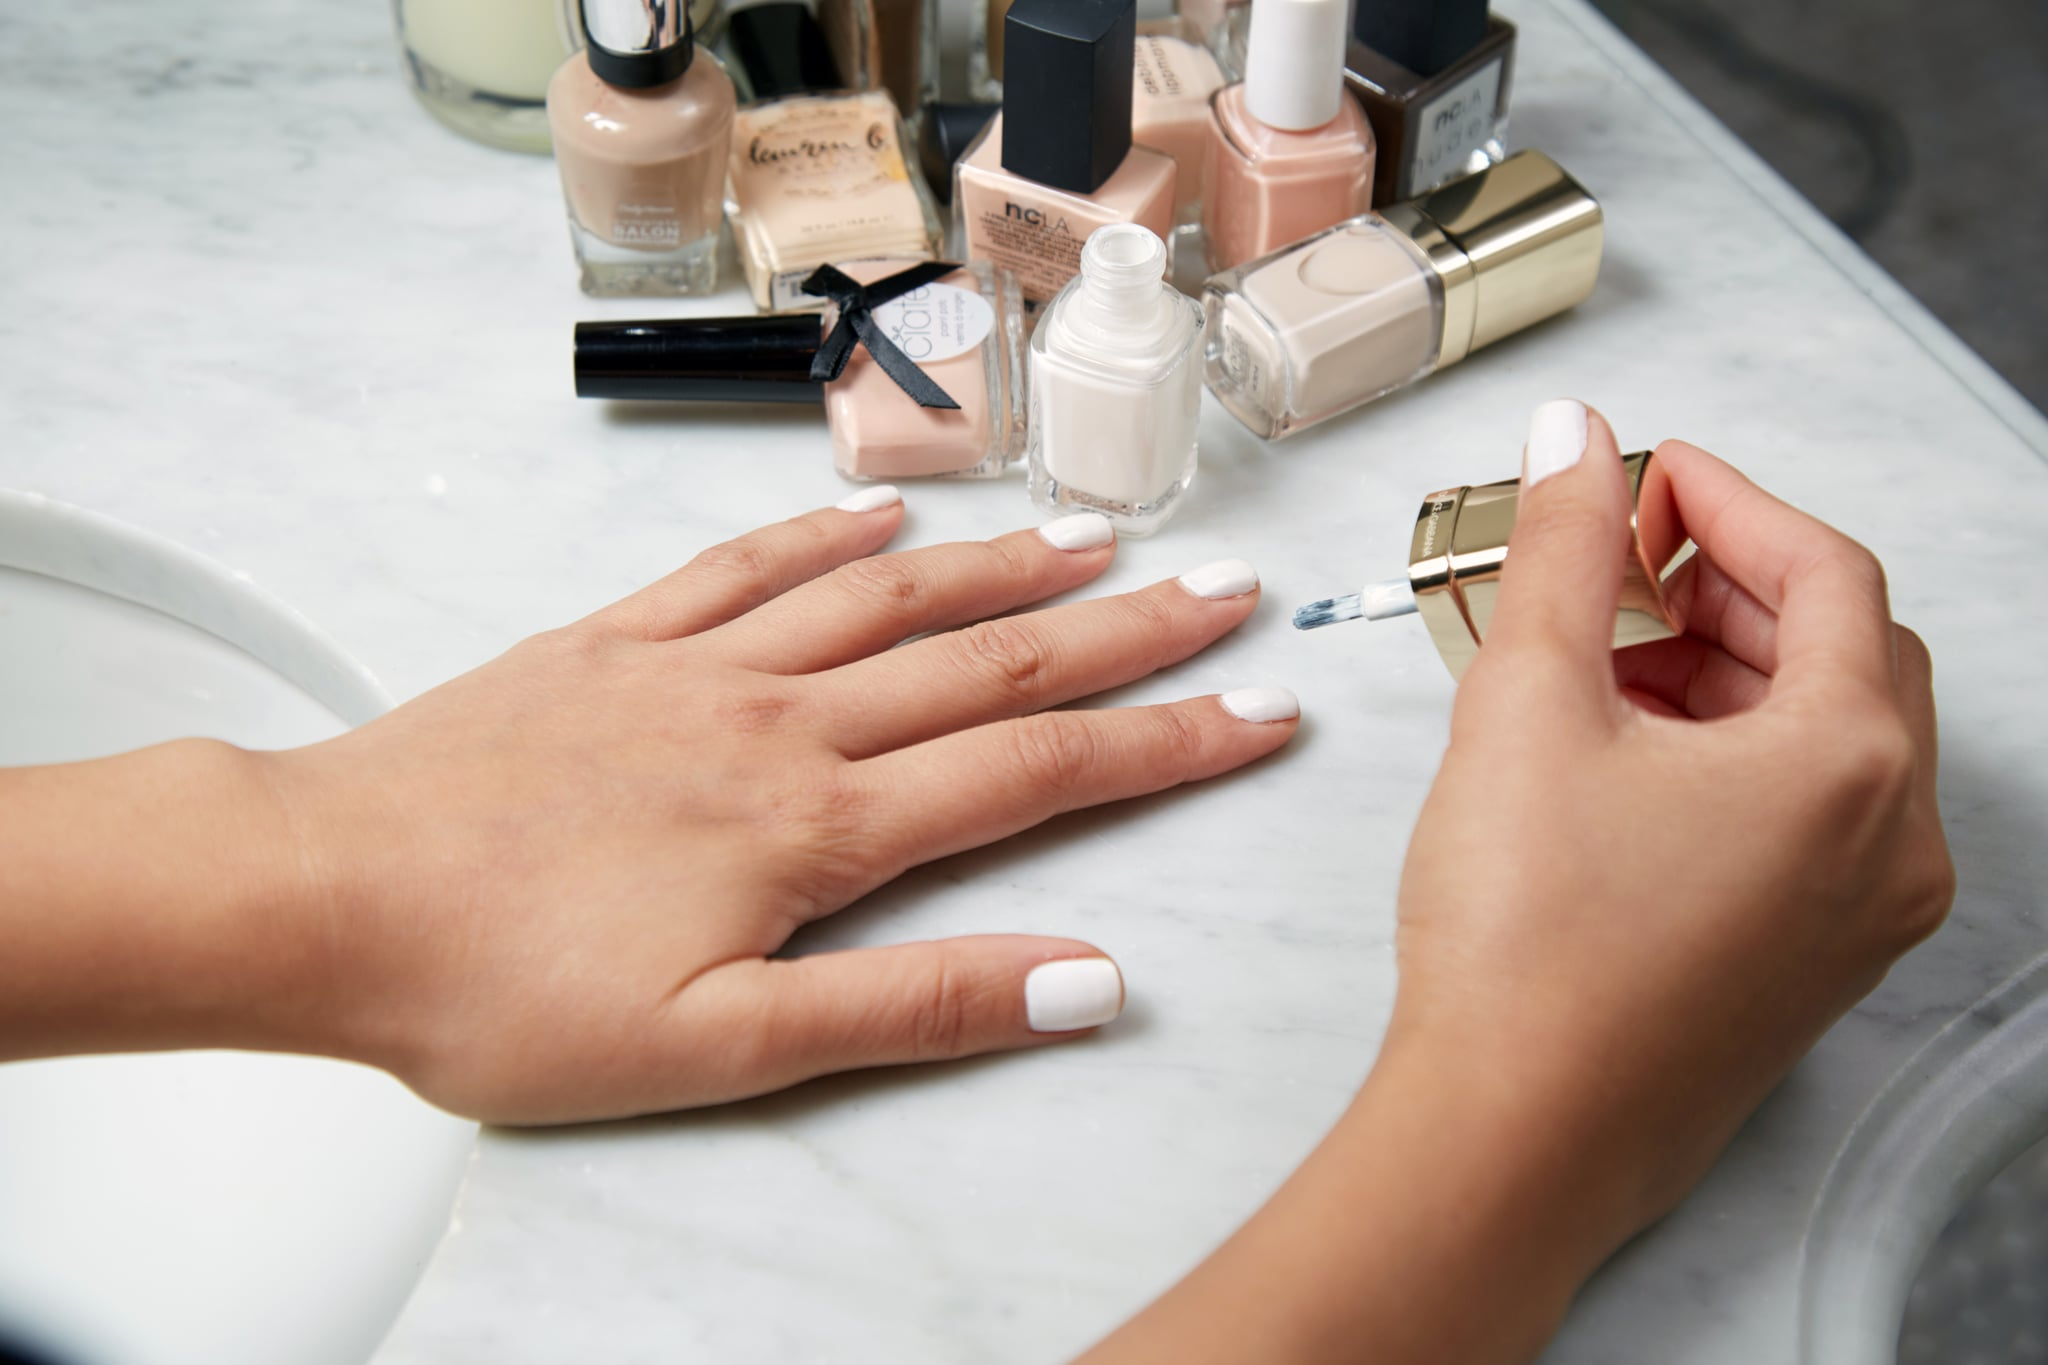 Infected Nail Treatment | POPSUGAR Beauty Australia